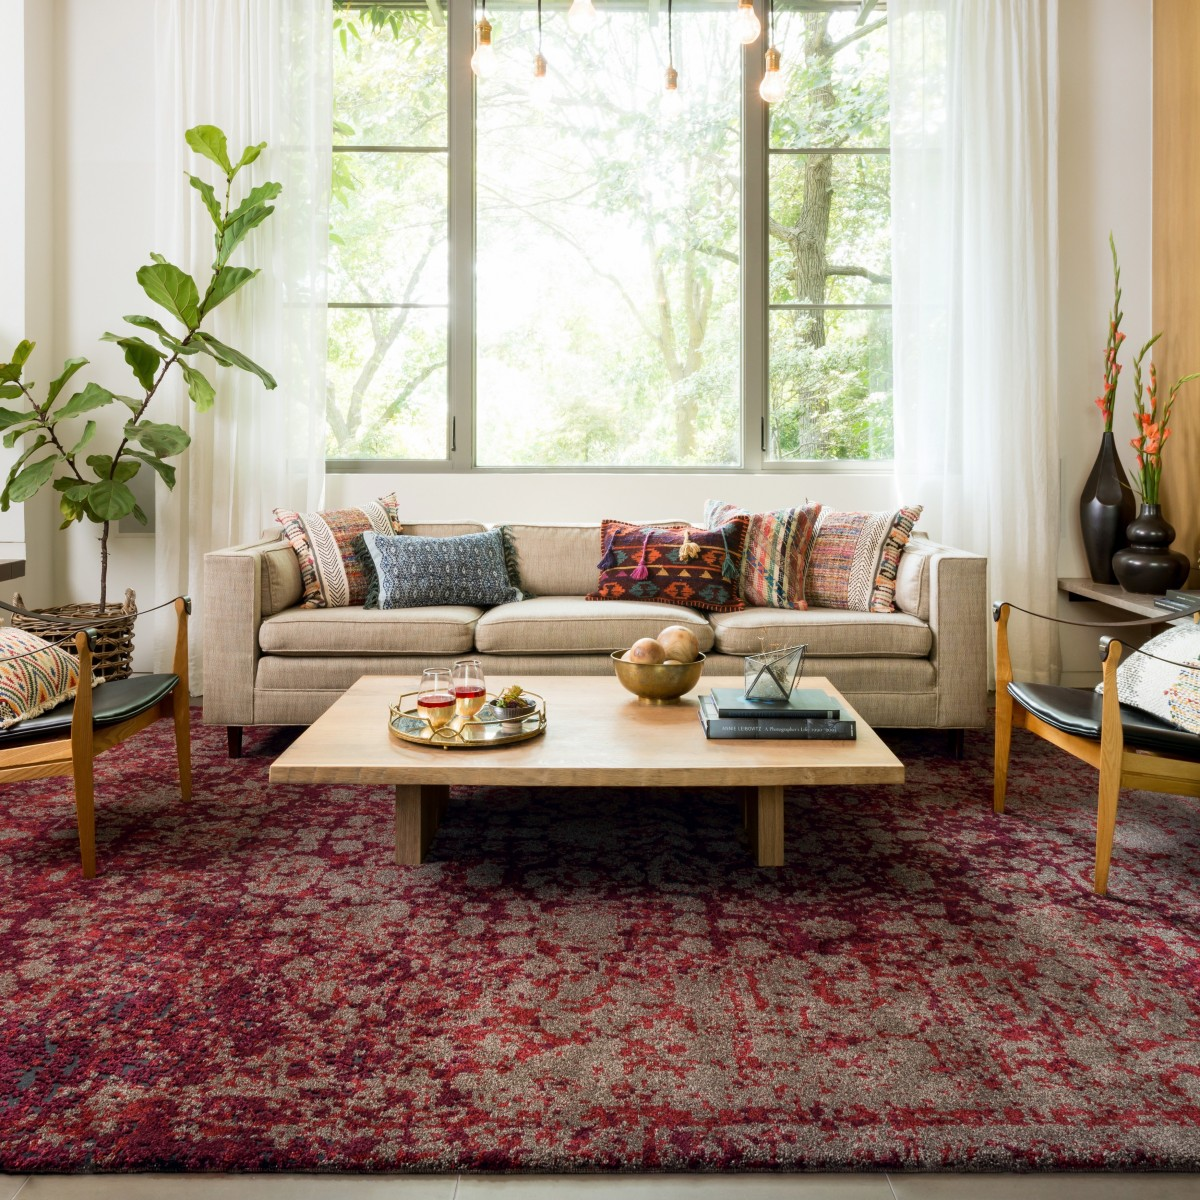 Transform any room in your house with an area rug sonoma - Best area rugs for living room ...